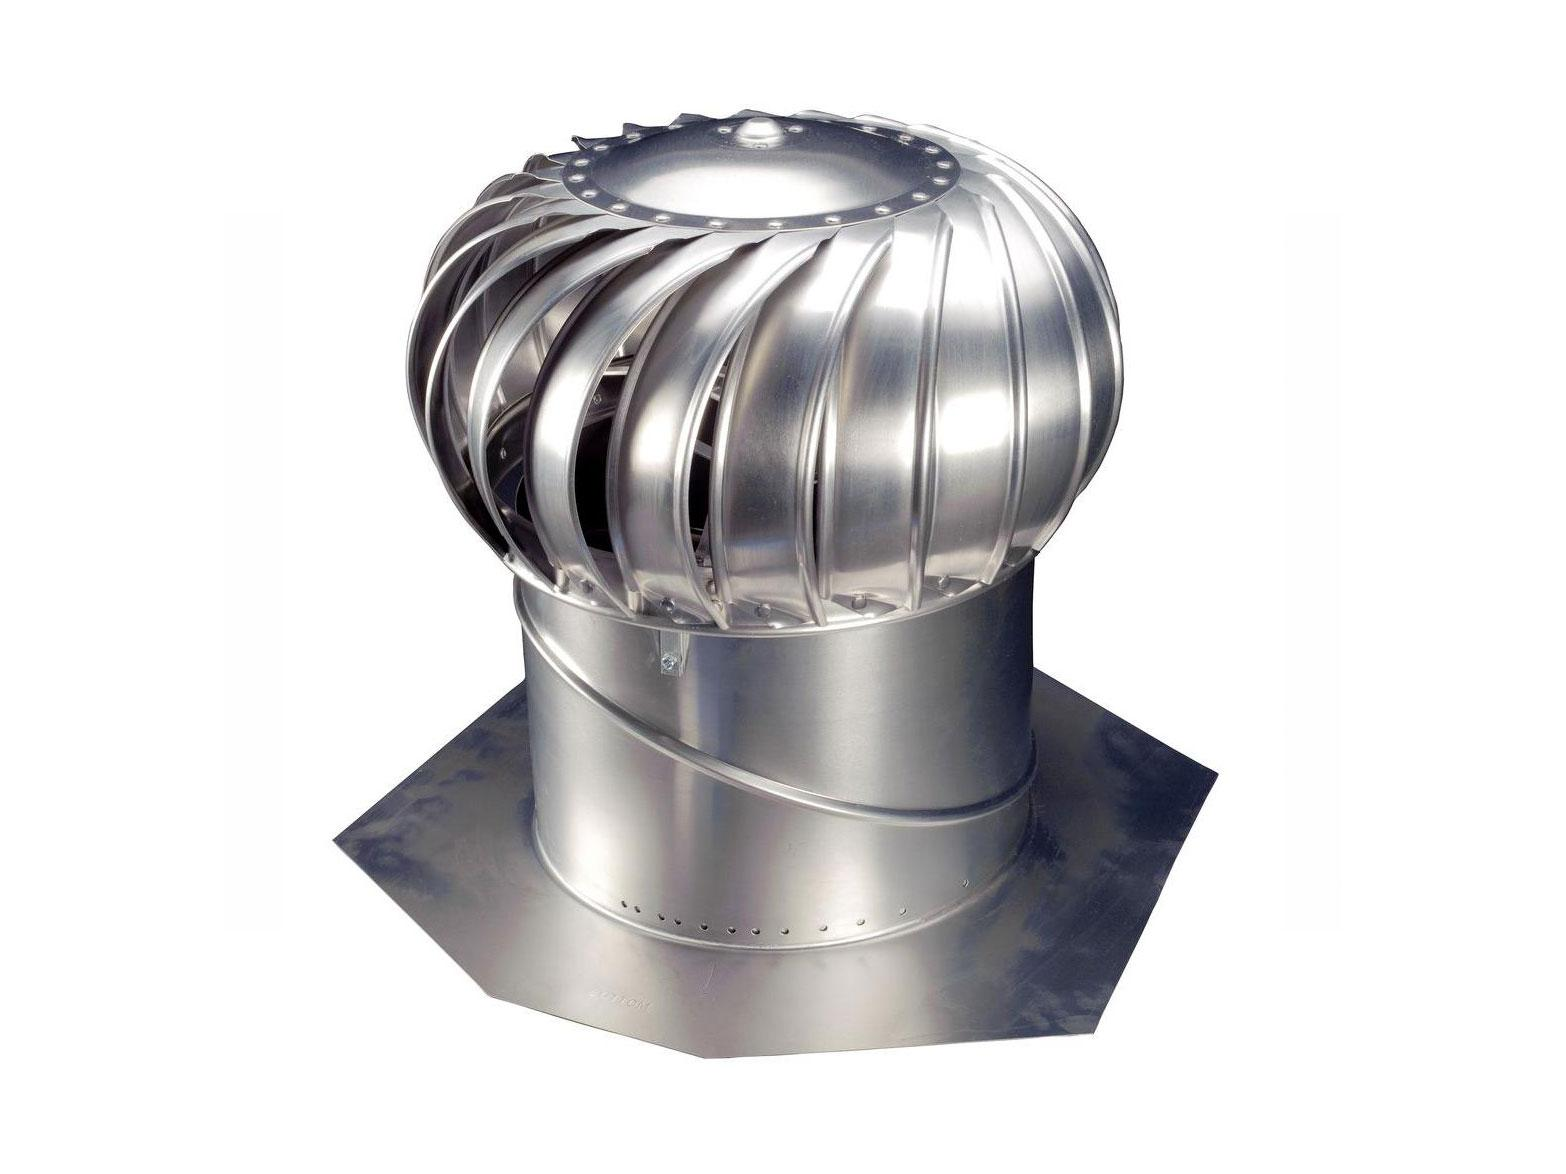 Whirlybird Roof Vents : Whirlybird roof vents for sale south africa